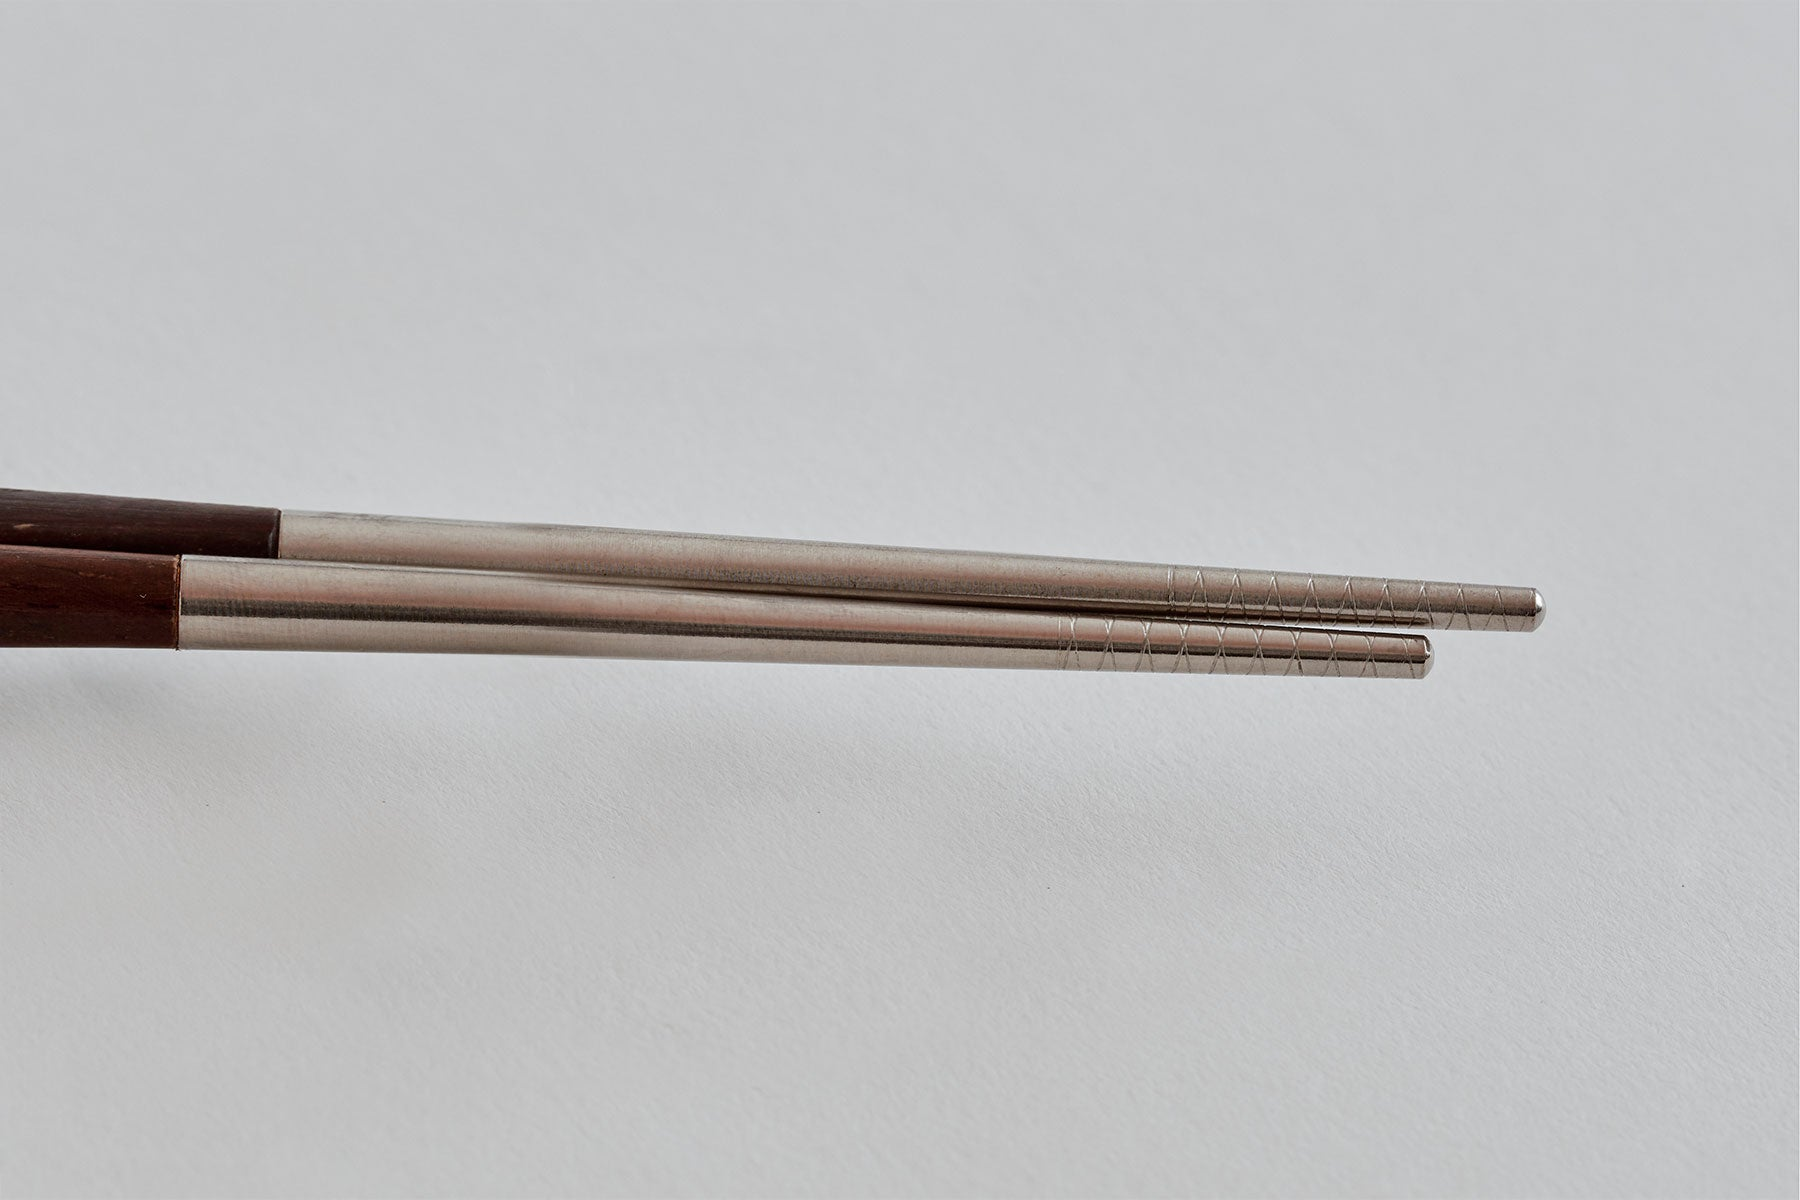 Dual Stainless Steel and Classic Wood Chopsticks